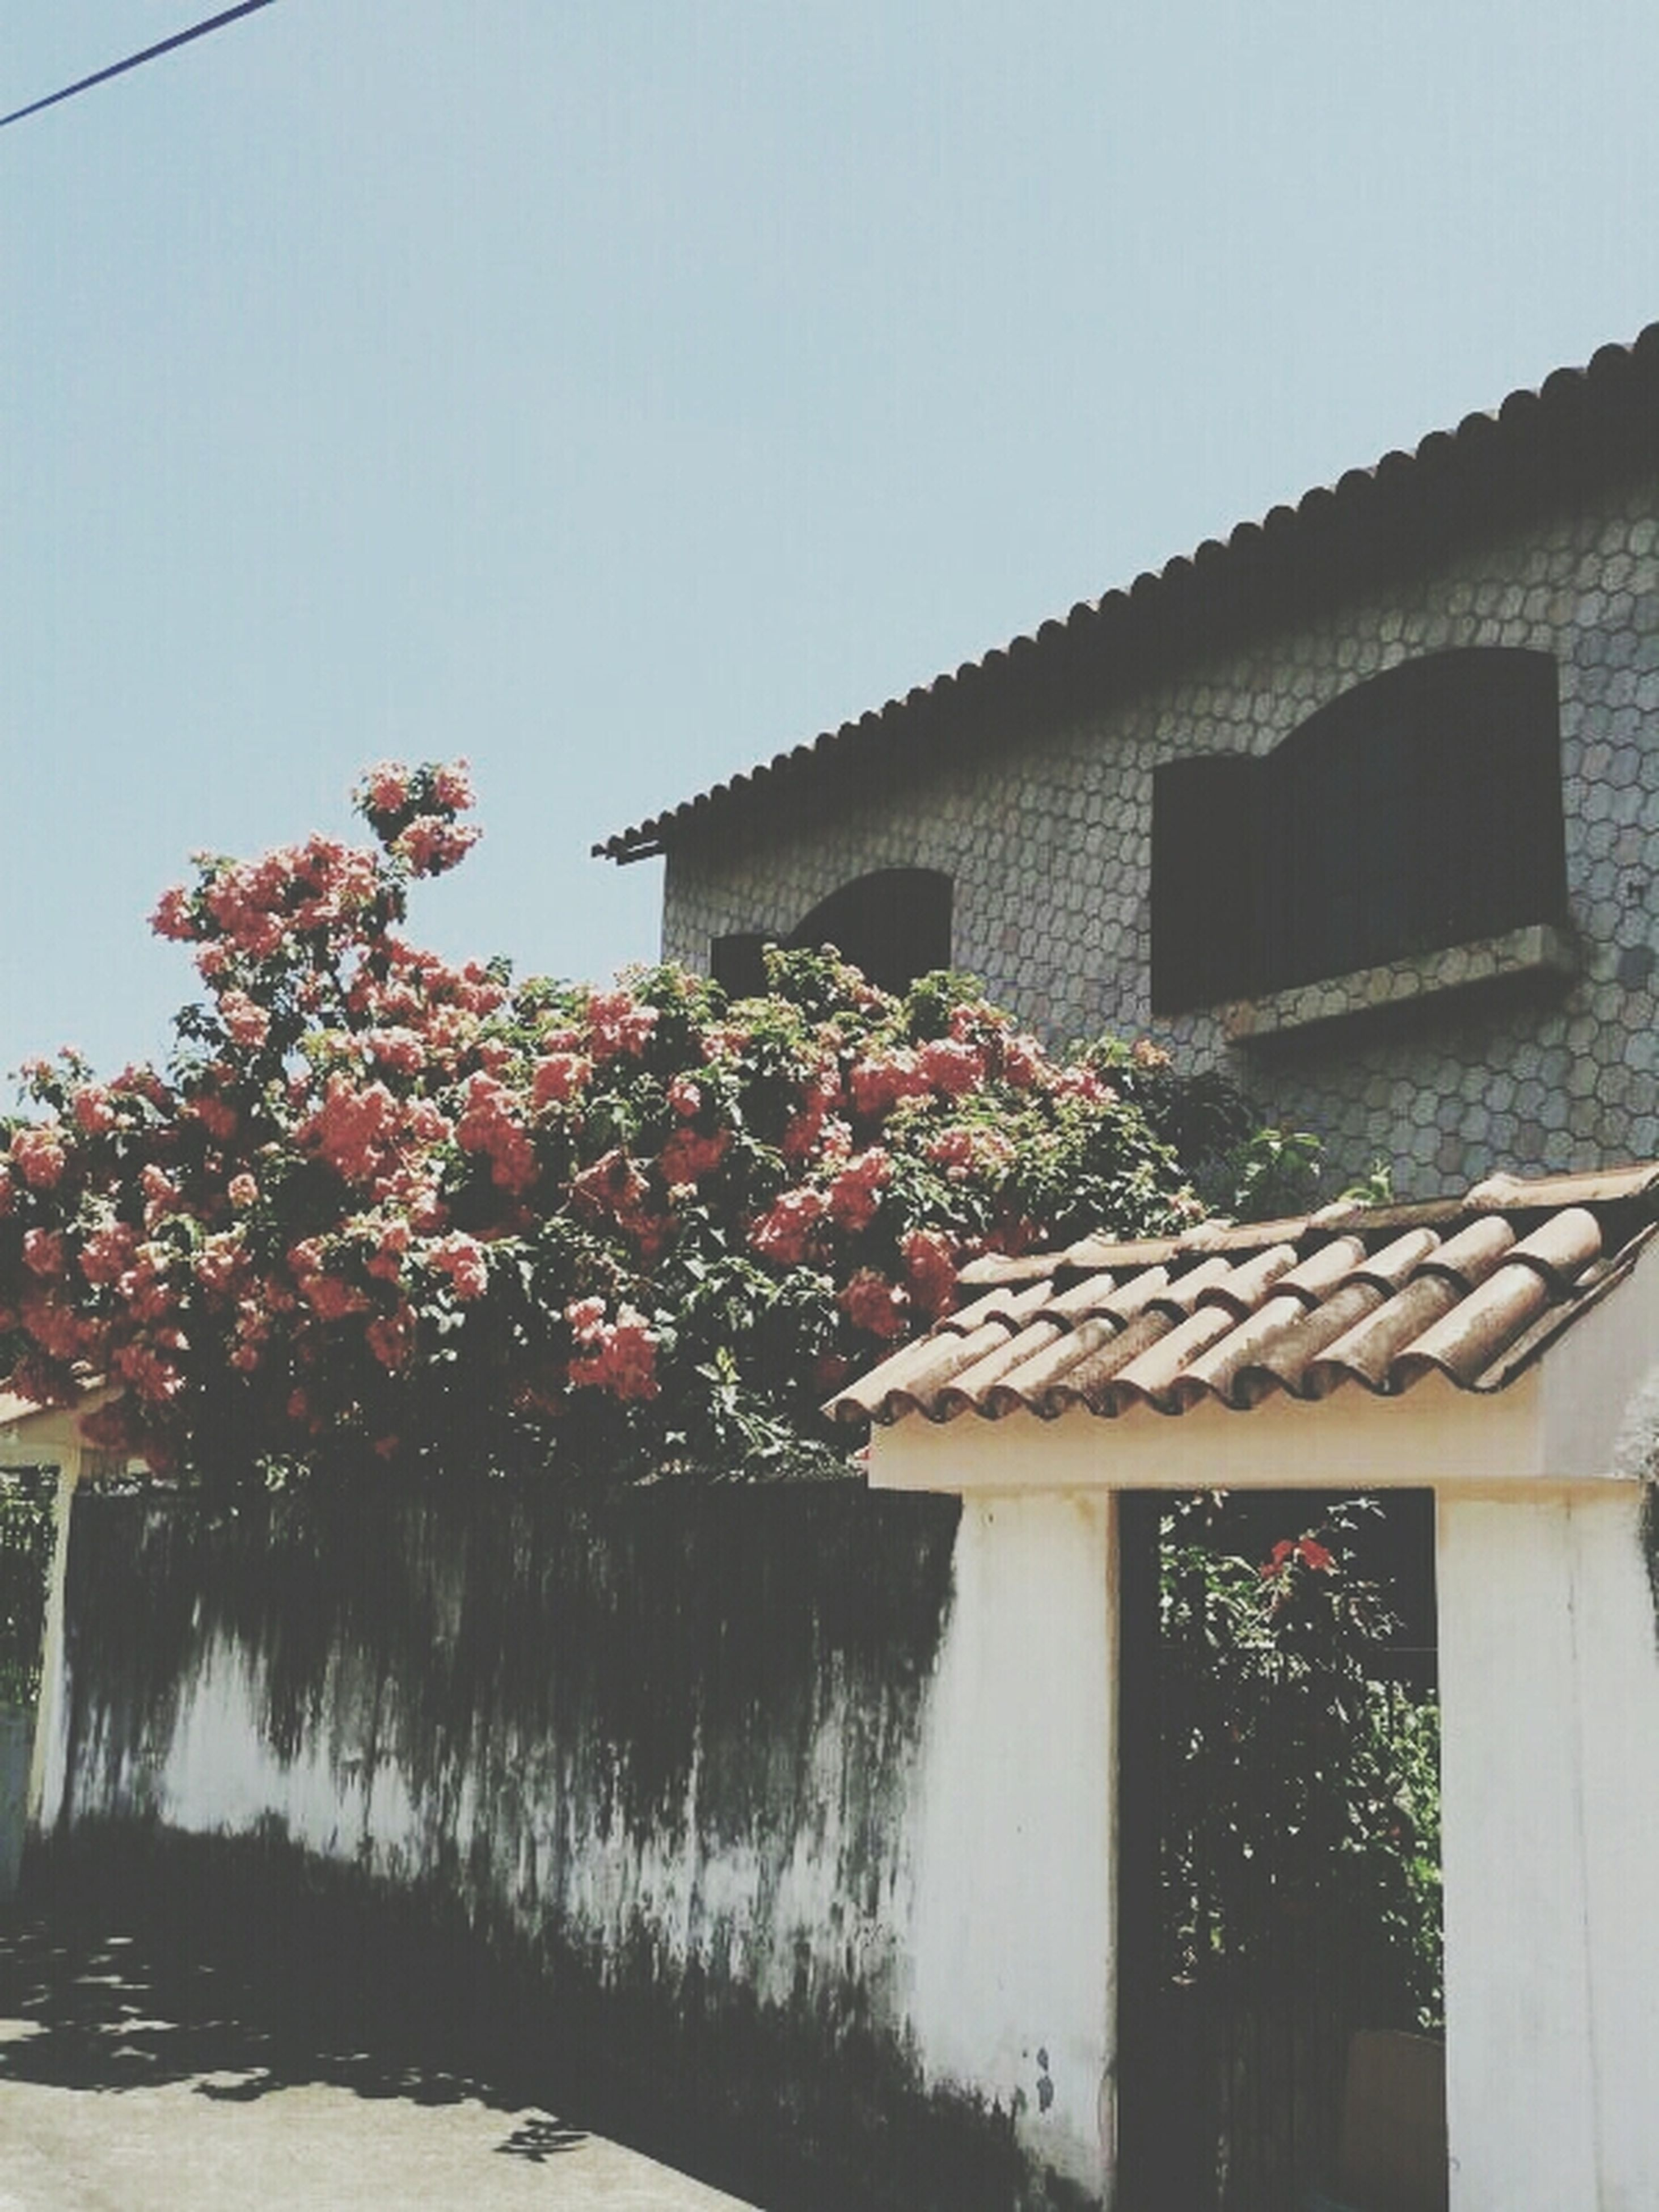 built structure, architecture, building exterior, clear sky, house, flower, growth, tree, plant, potted plant, sky, residential structure, nature, day, freshness, low angle view, outdoors, residential building, no people, sunlight